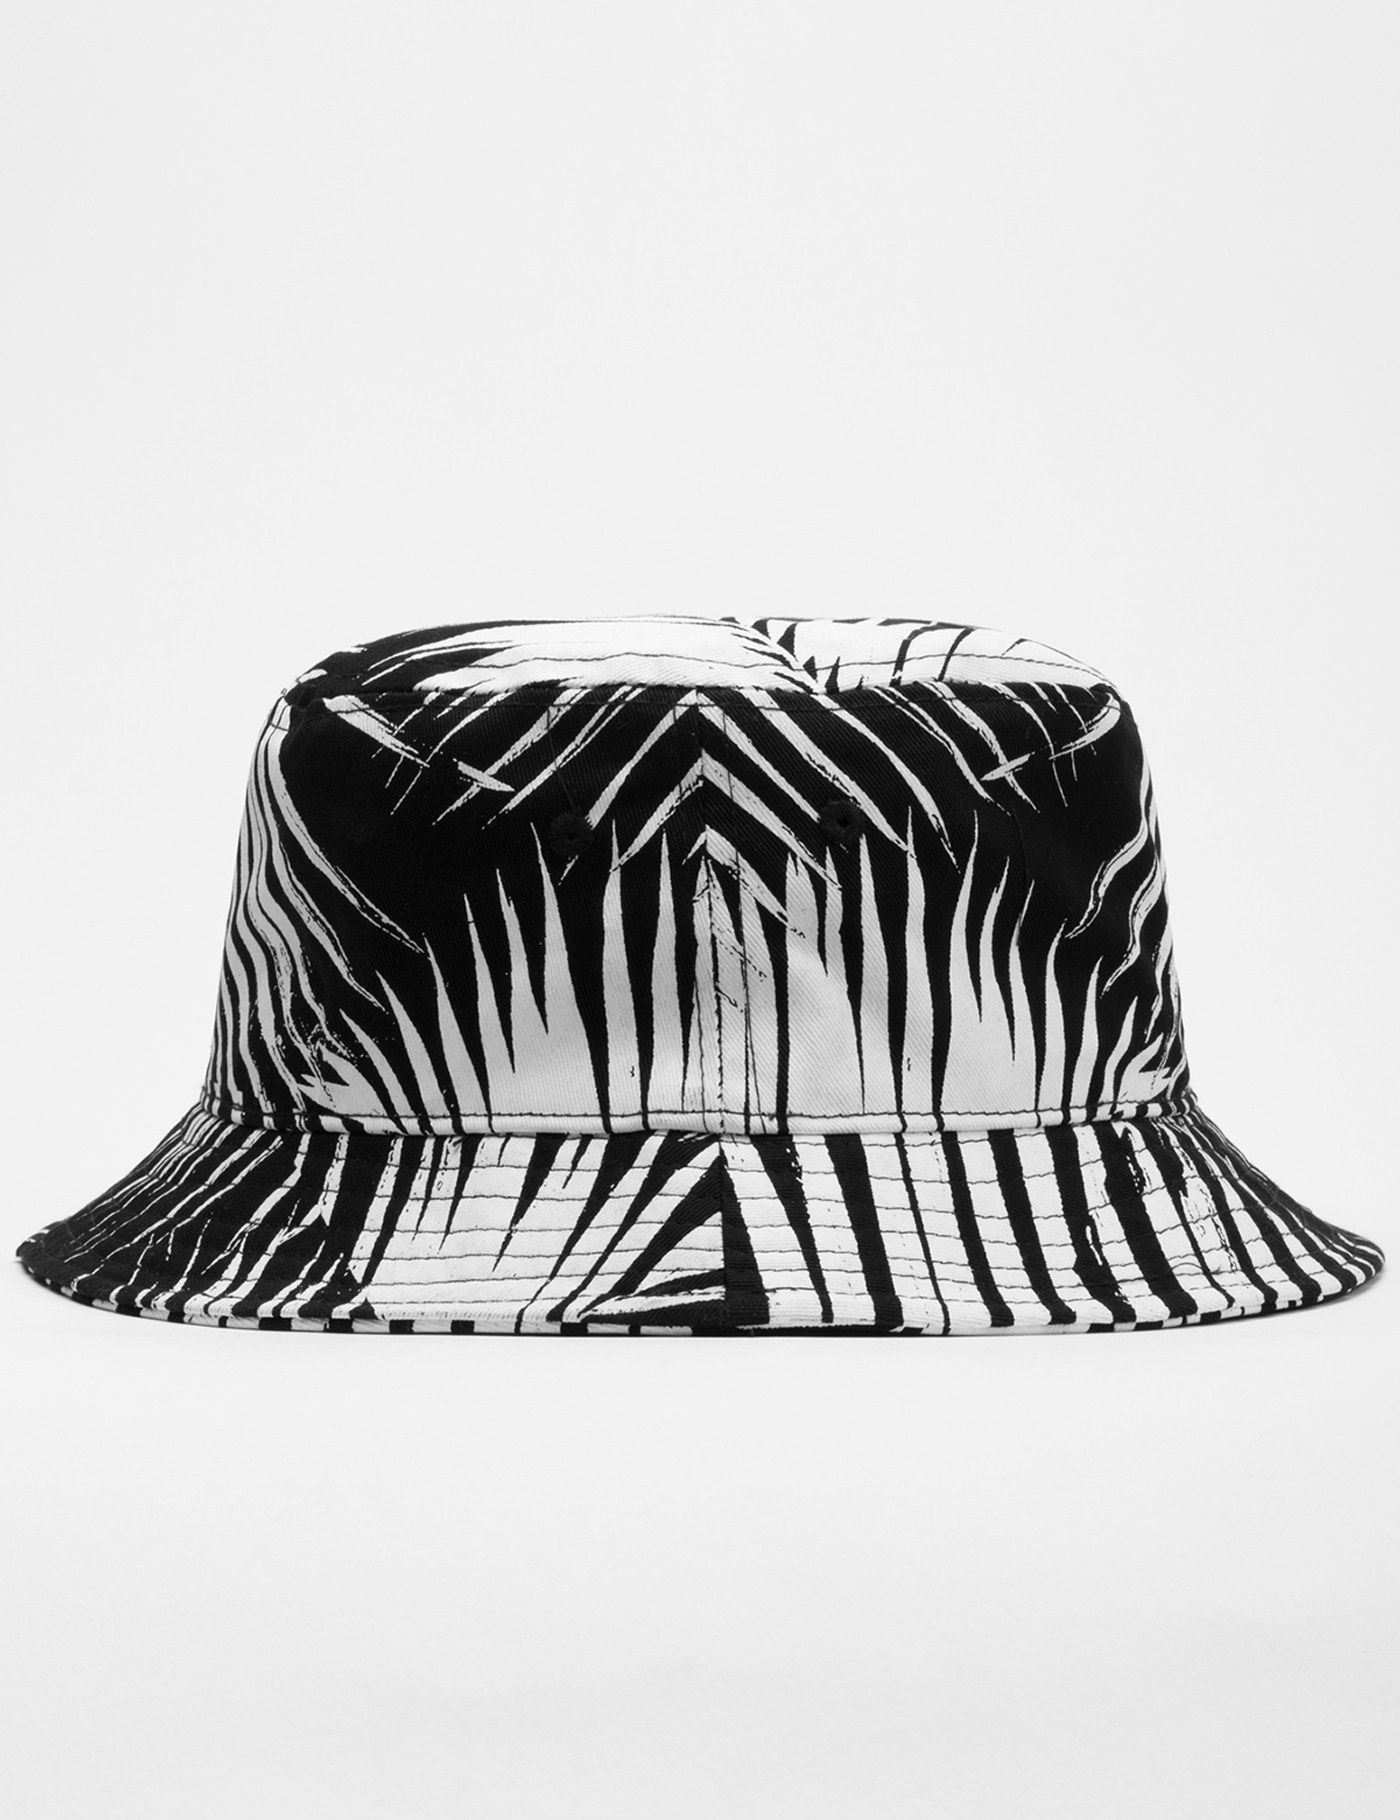 6e49f540364858 Shop STAMPD Black Palm Print Bucket Hat at HBX. Free Worldwide Shipping  available.